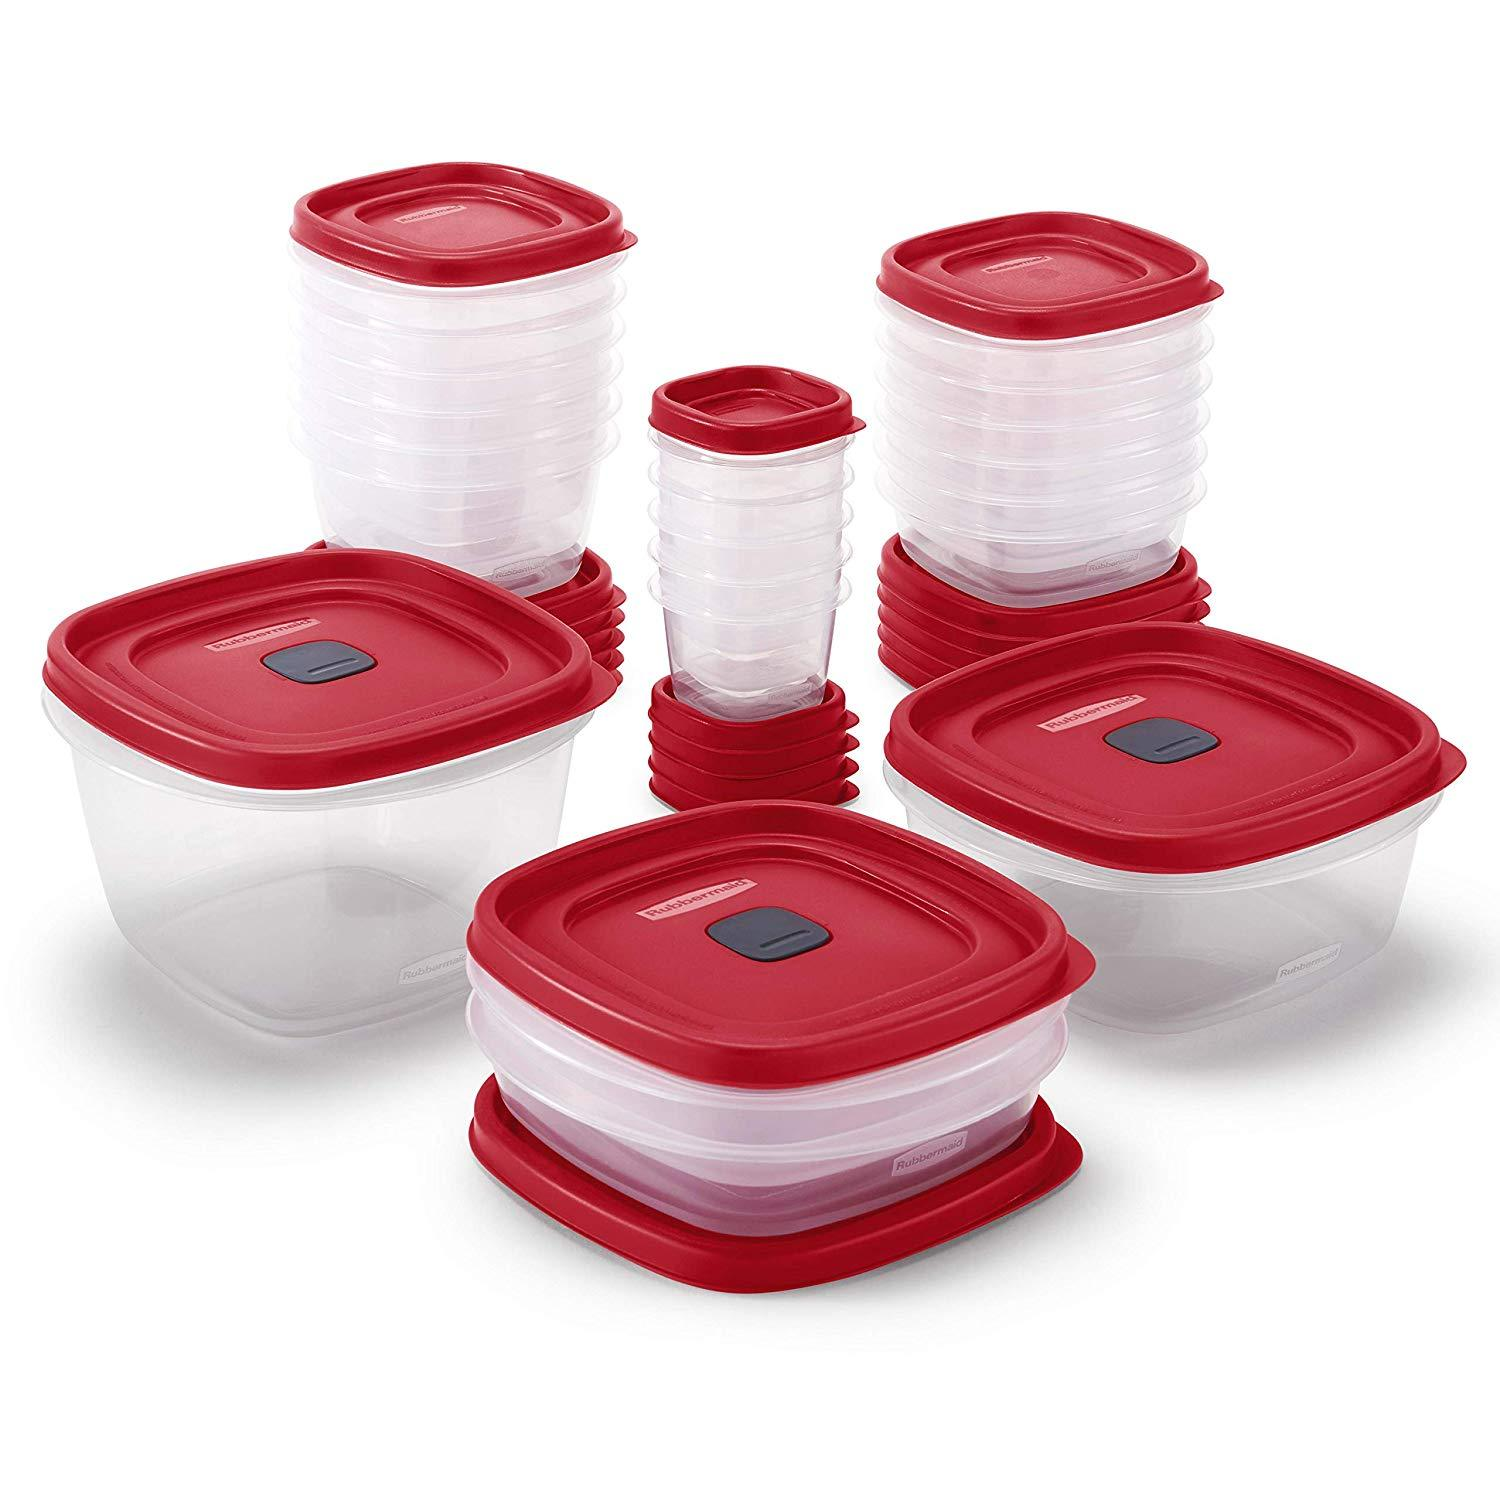 Rubbermaid Food Storage Container: 1 customer review and 2 ...